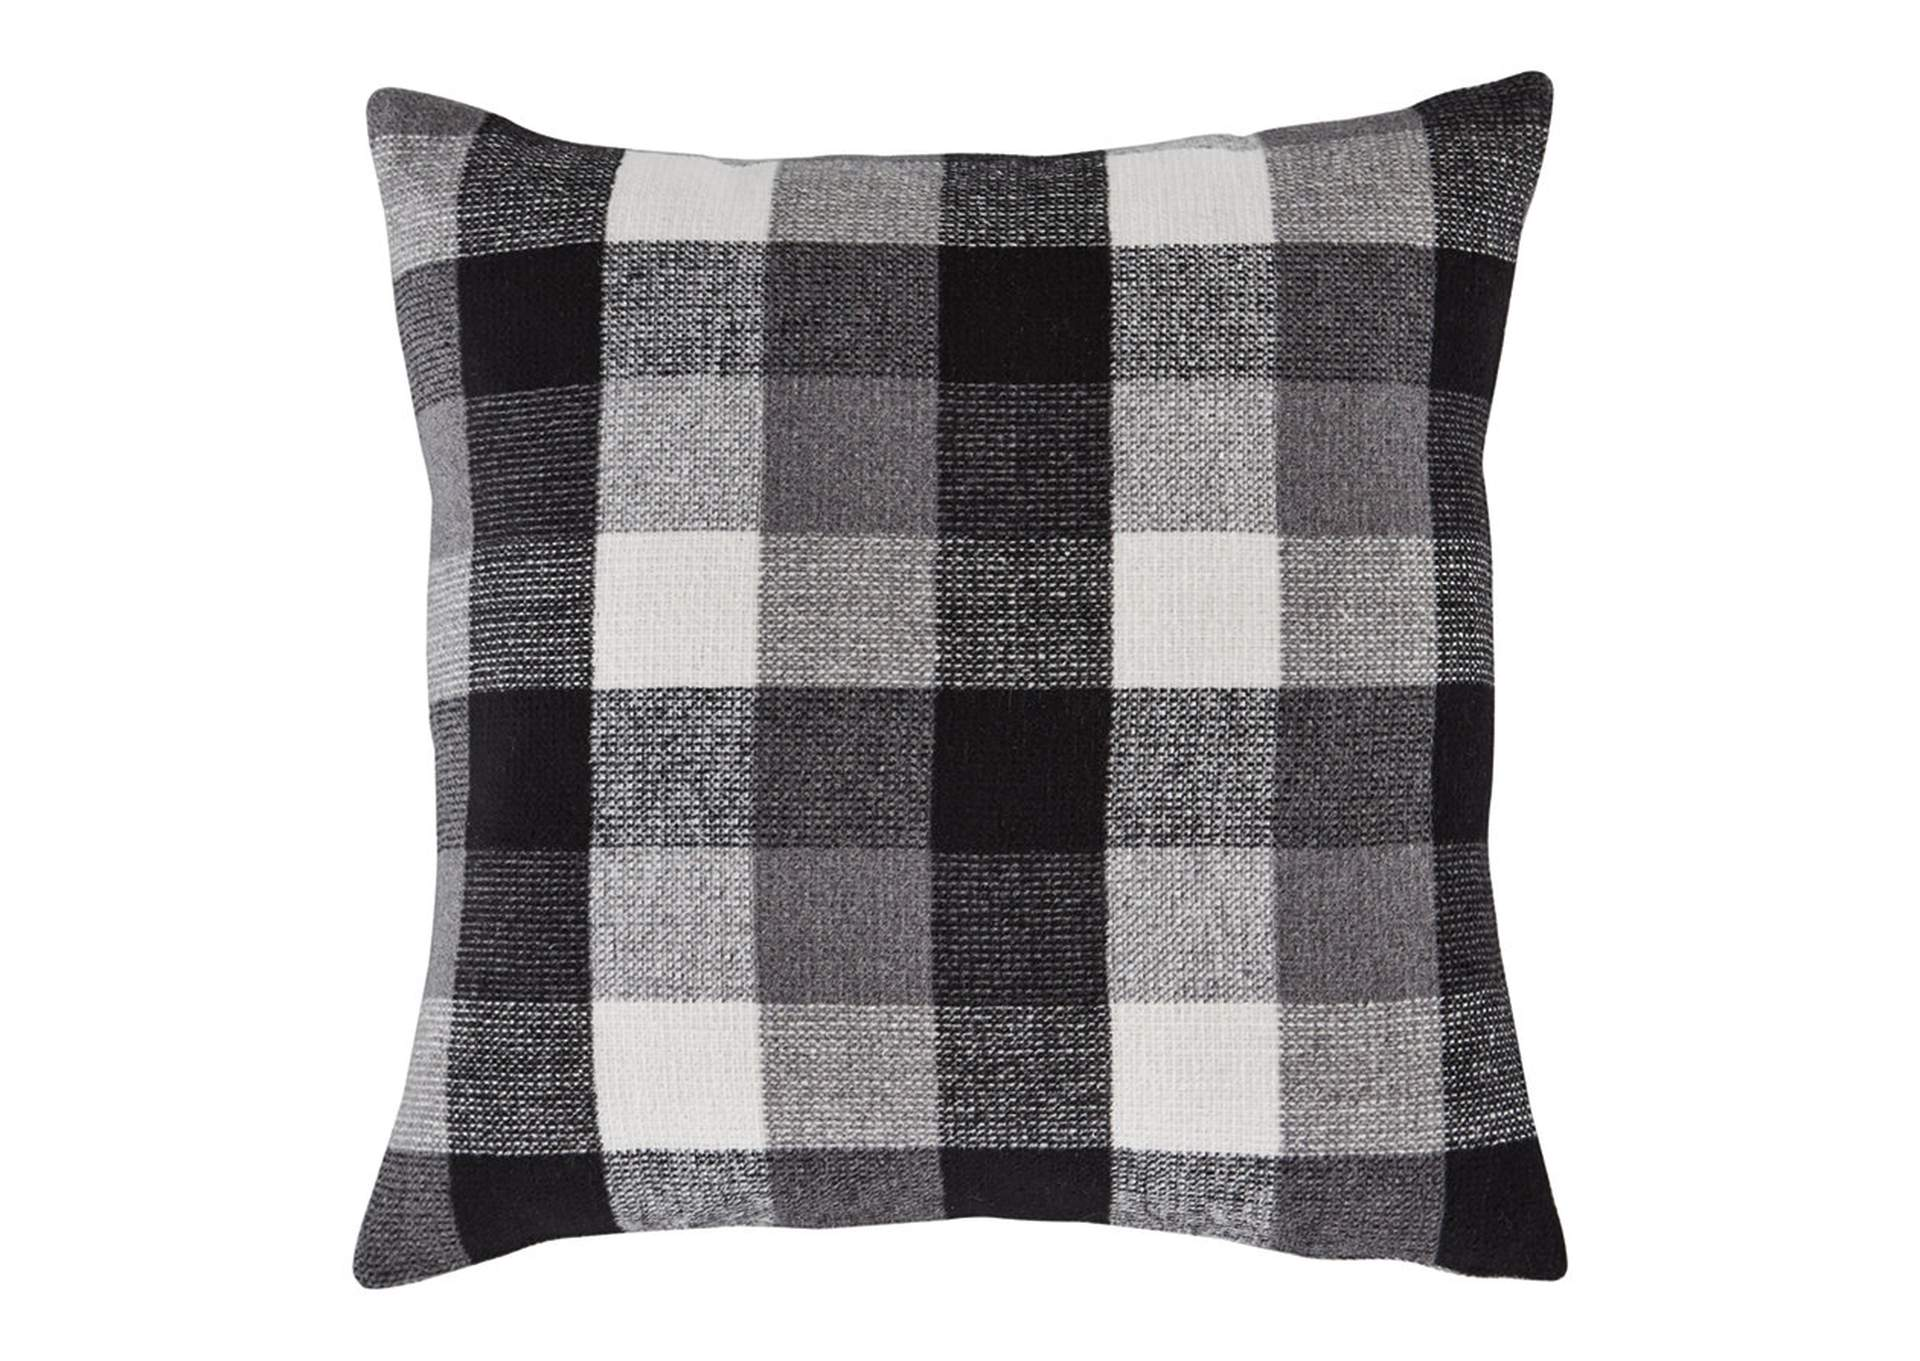 Carrigan Black/White 4 Piece Plaid Fabric Pillow Set,Signature Design By Ashley